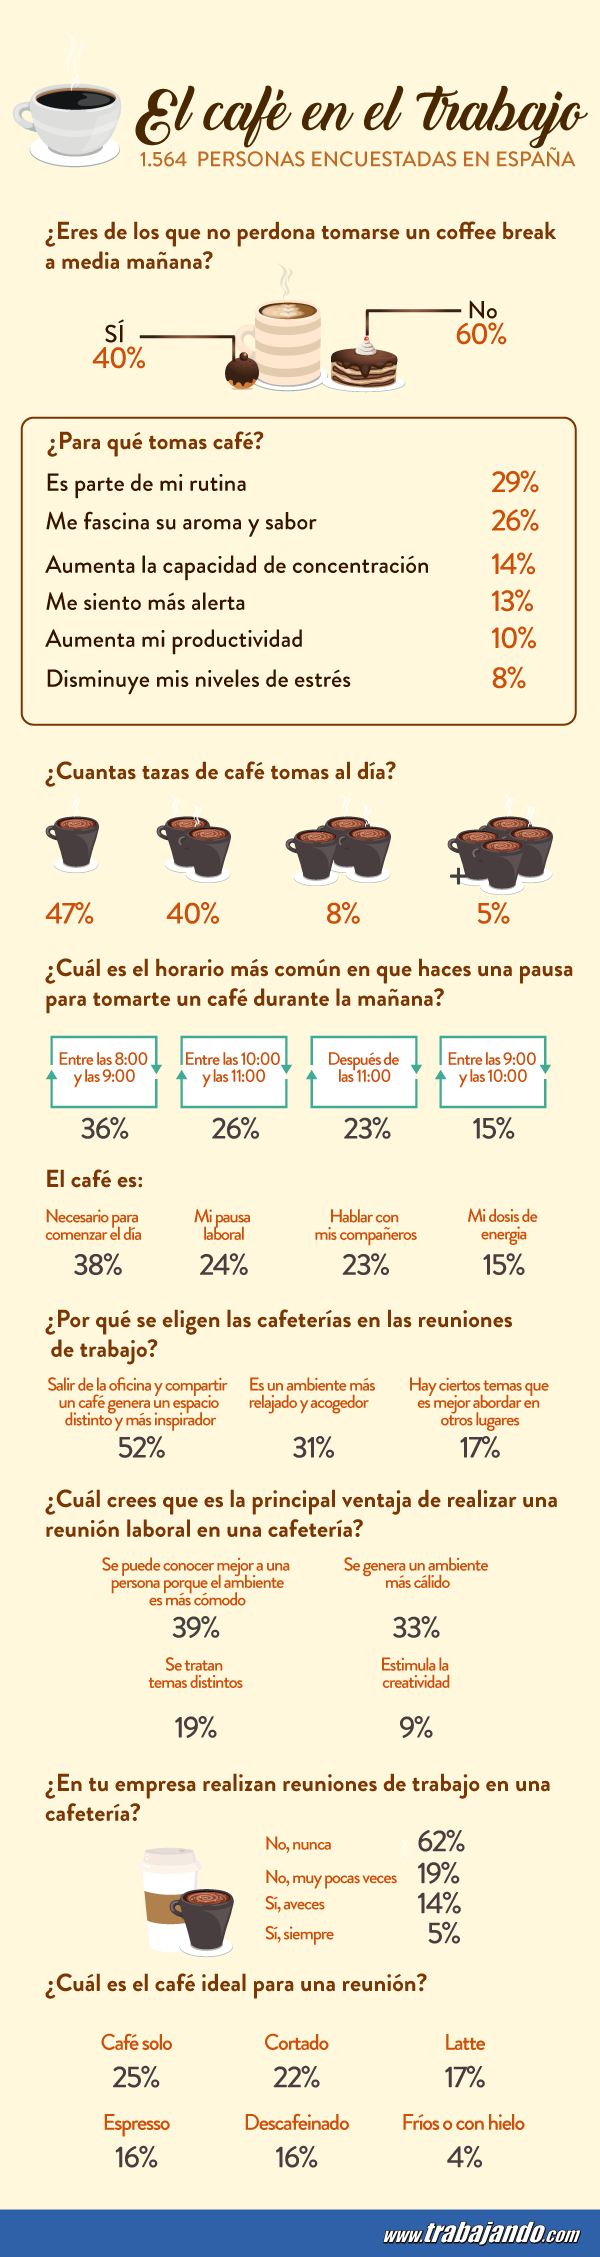 infografia-coffee-break